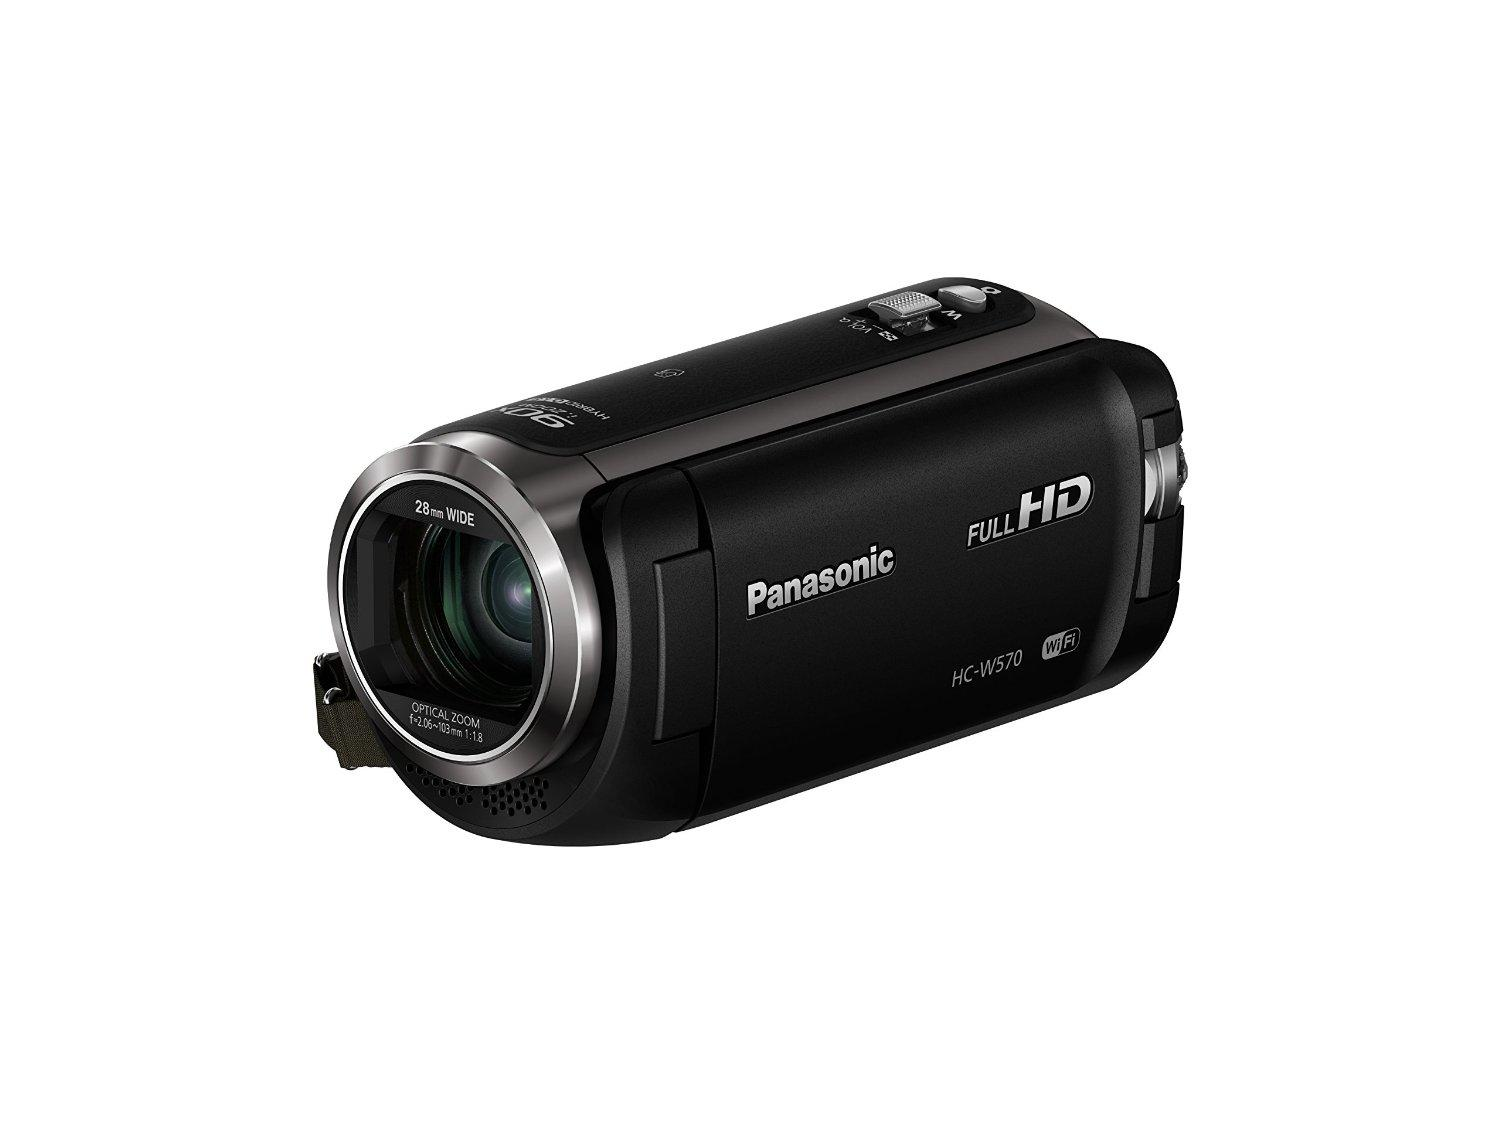 Panasonic HC-W570 HD Camcorder with Built-in Twin Video Camera